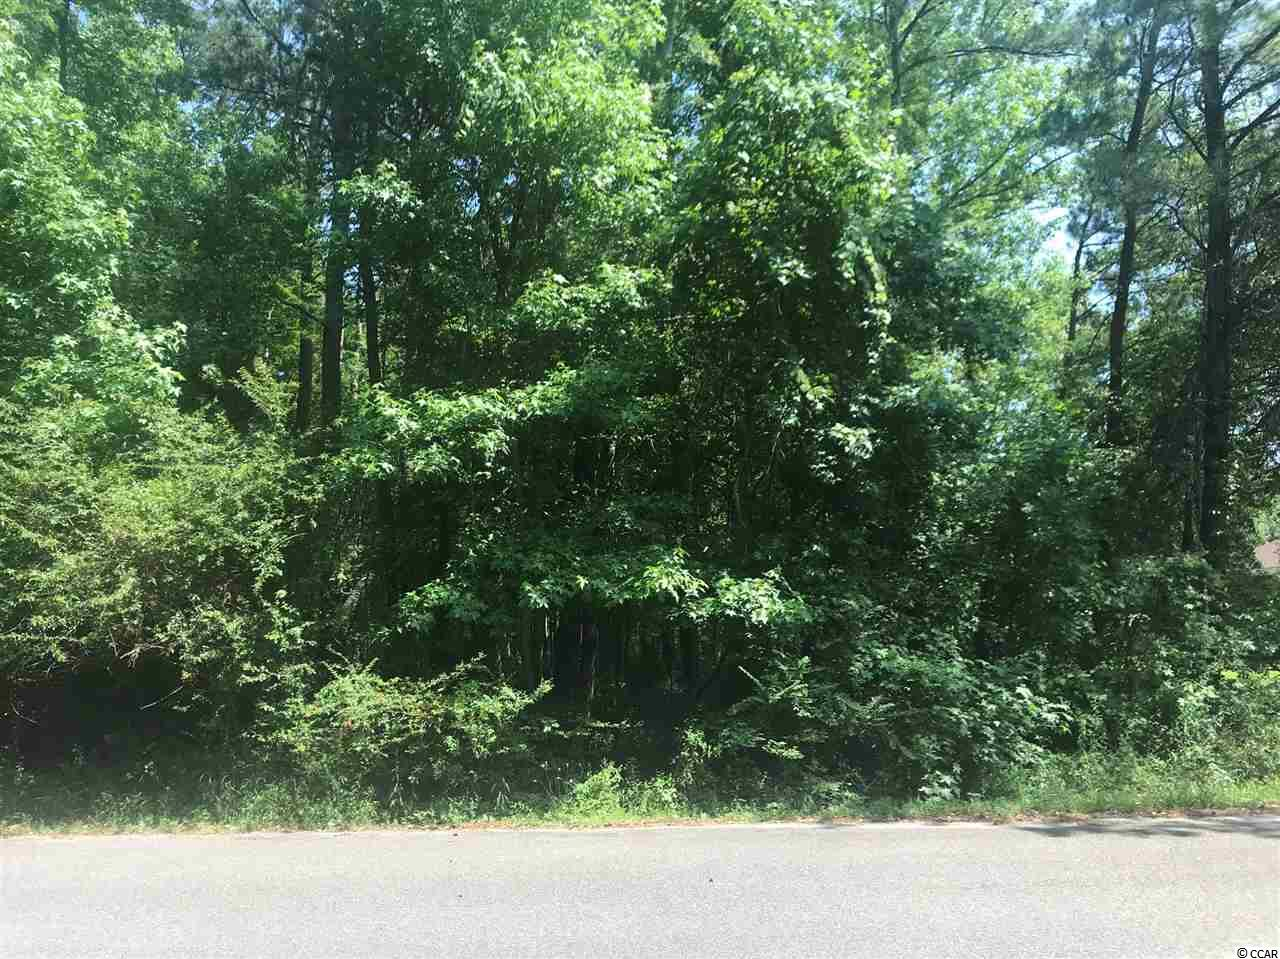 Best lot buy in Litchfield Country club. Large lots on nice cul de sac Red Maple.  Lots back to Carolina Bay portion of Stables Park. No backyard neighbors.  These are priced to sell immediately and may be purchased singularly or as a pair. You will not find better lots at this price in all of Litchfield Plantation. Wooded with a variety of hardwood and towering pine. X flood zone, impact fees have been paid. Water and sewer available.